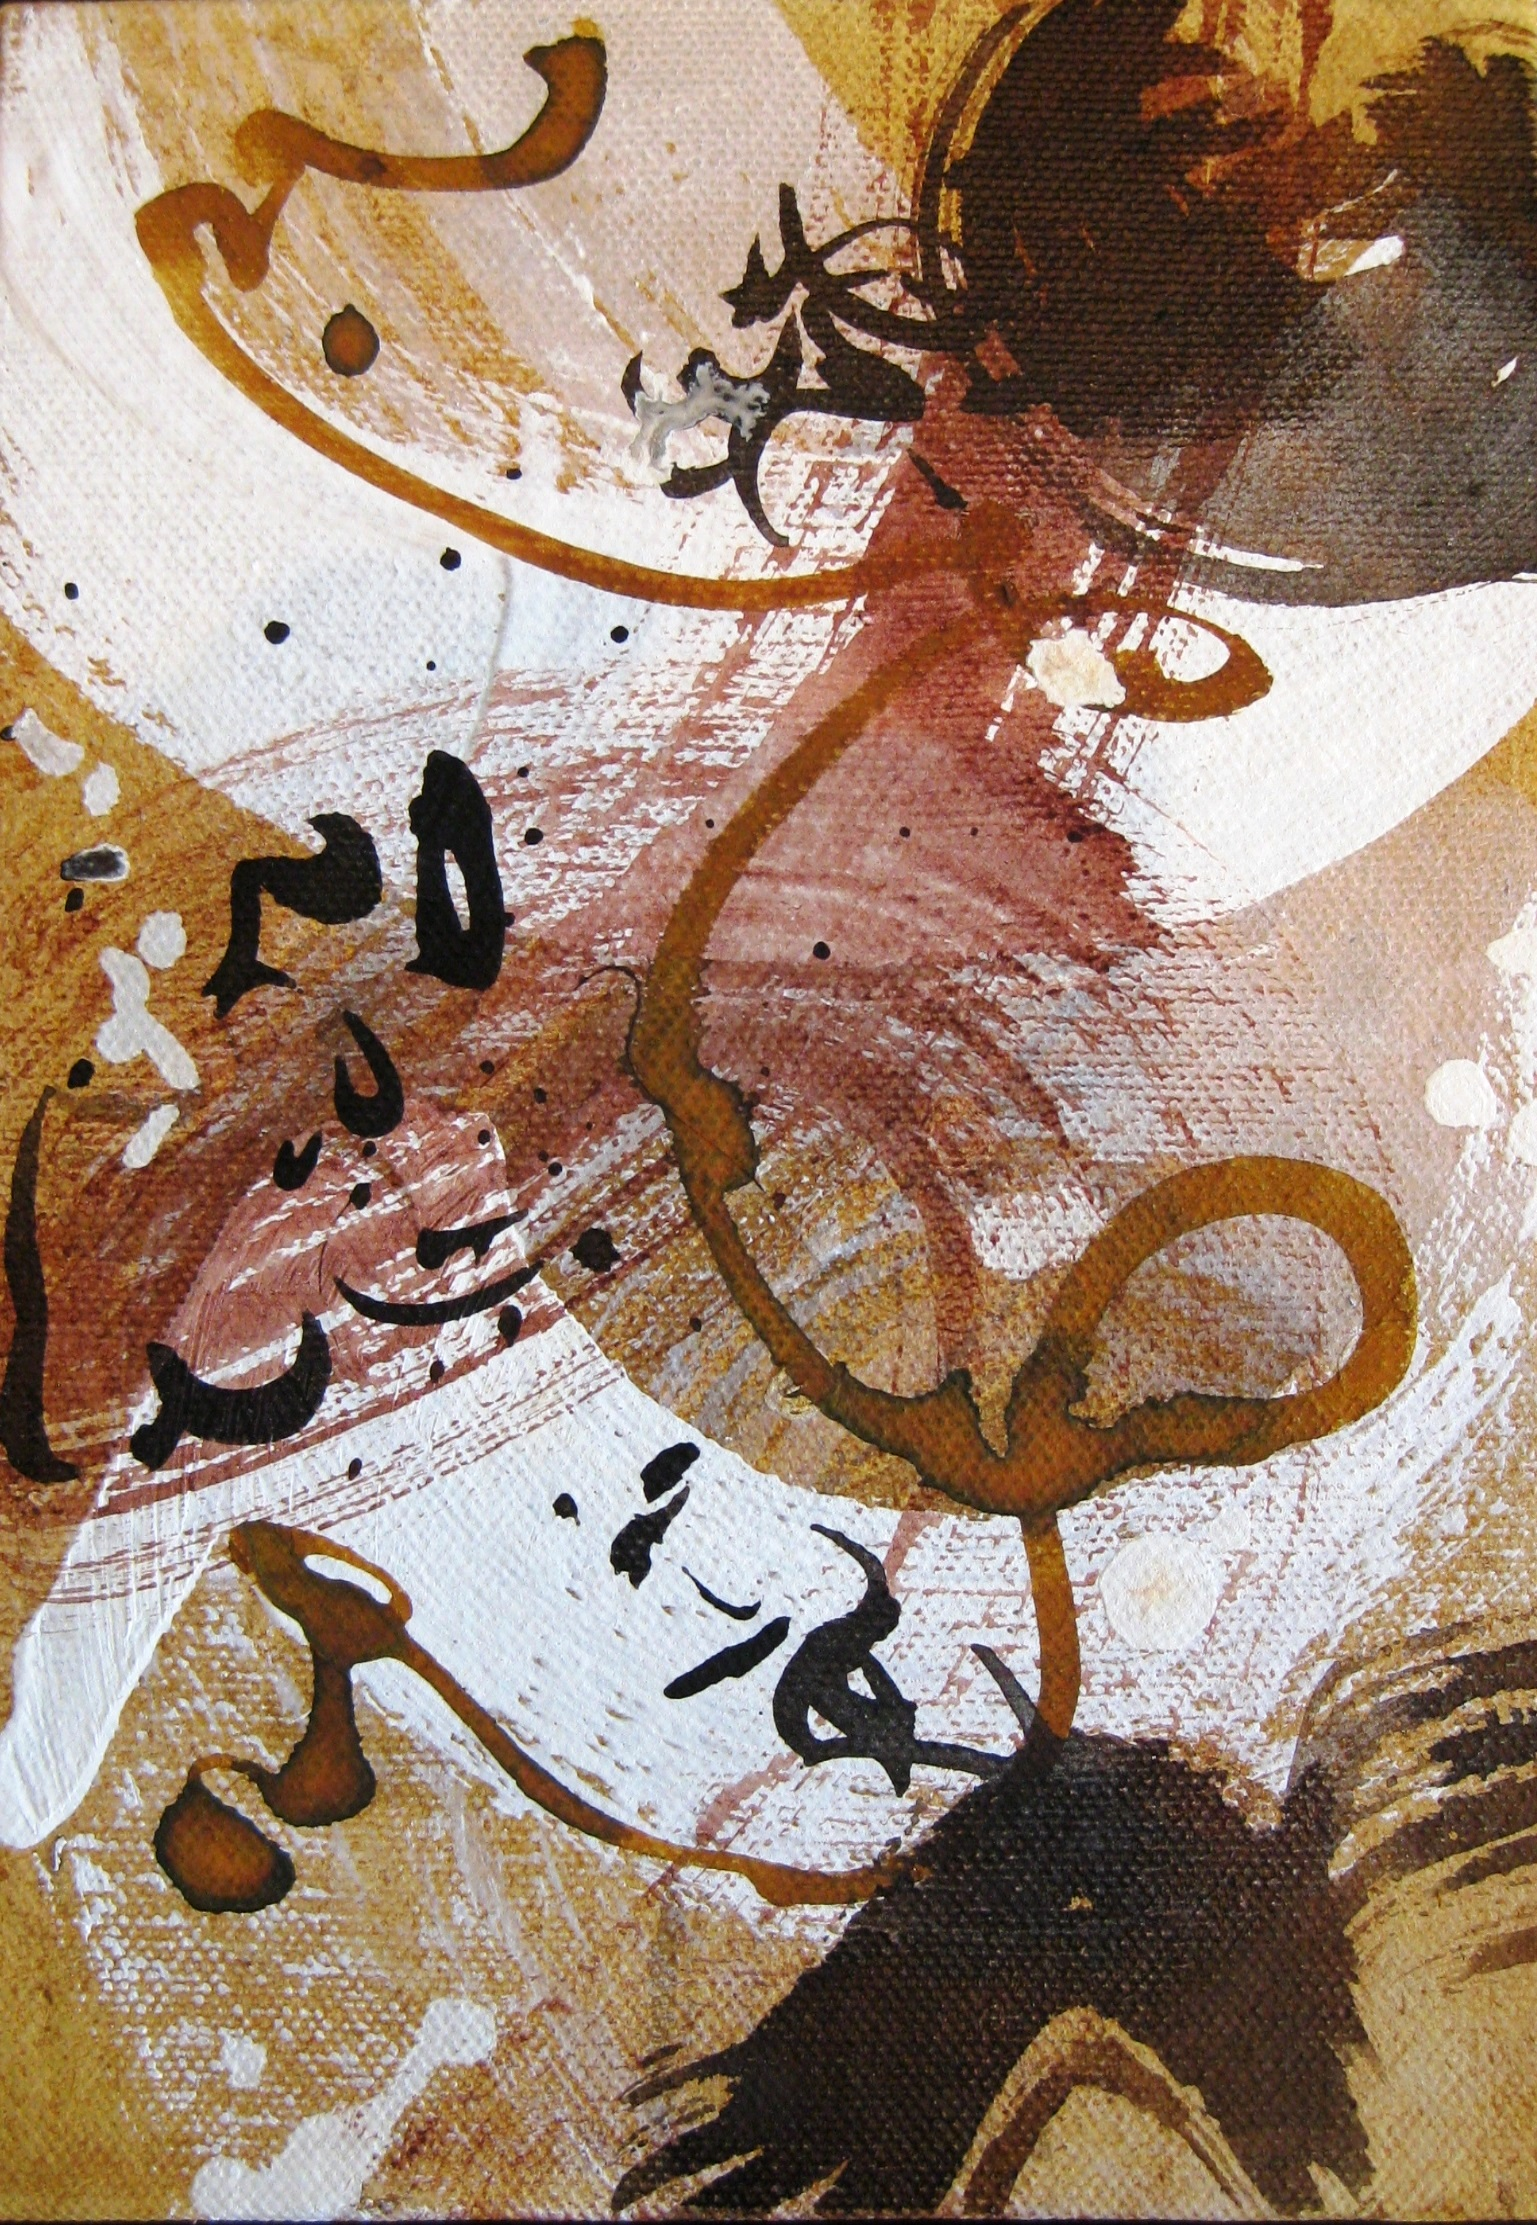 Caroline Banks Art - Transience study I - Gesso and ink on canvas board